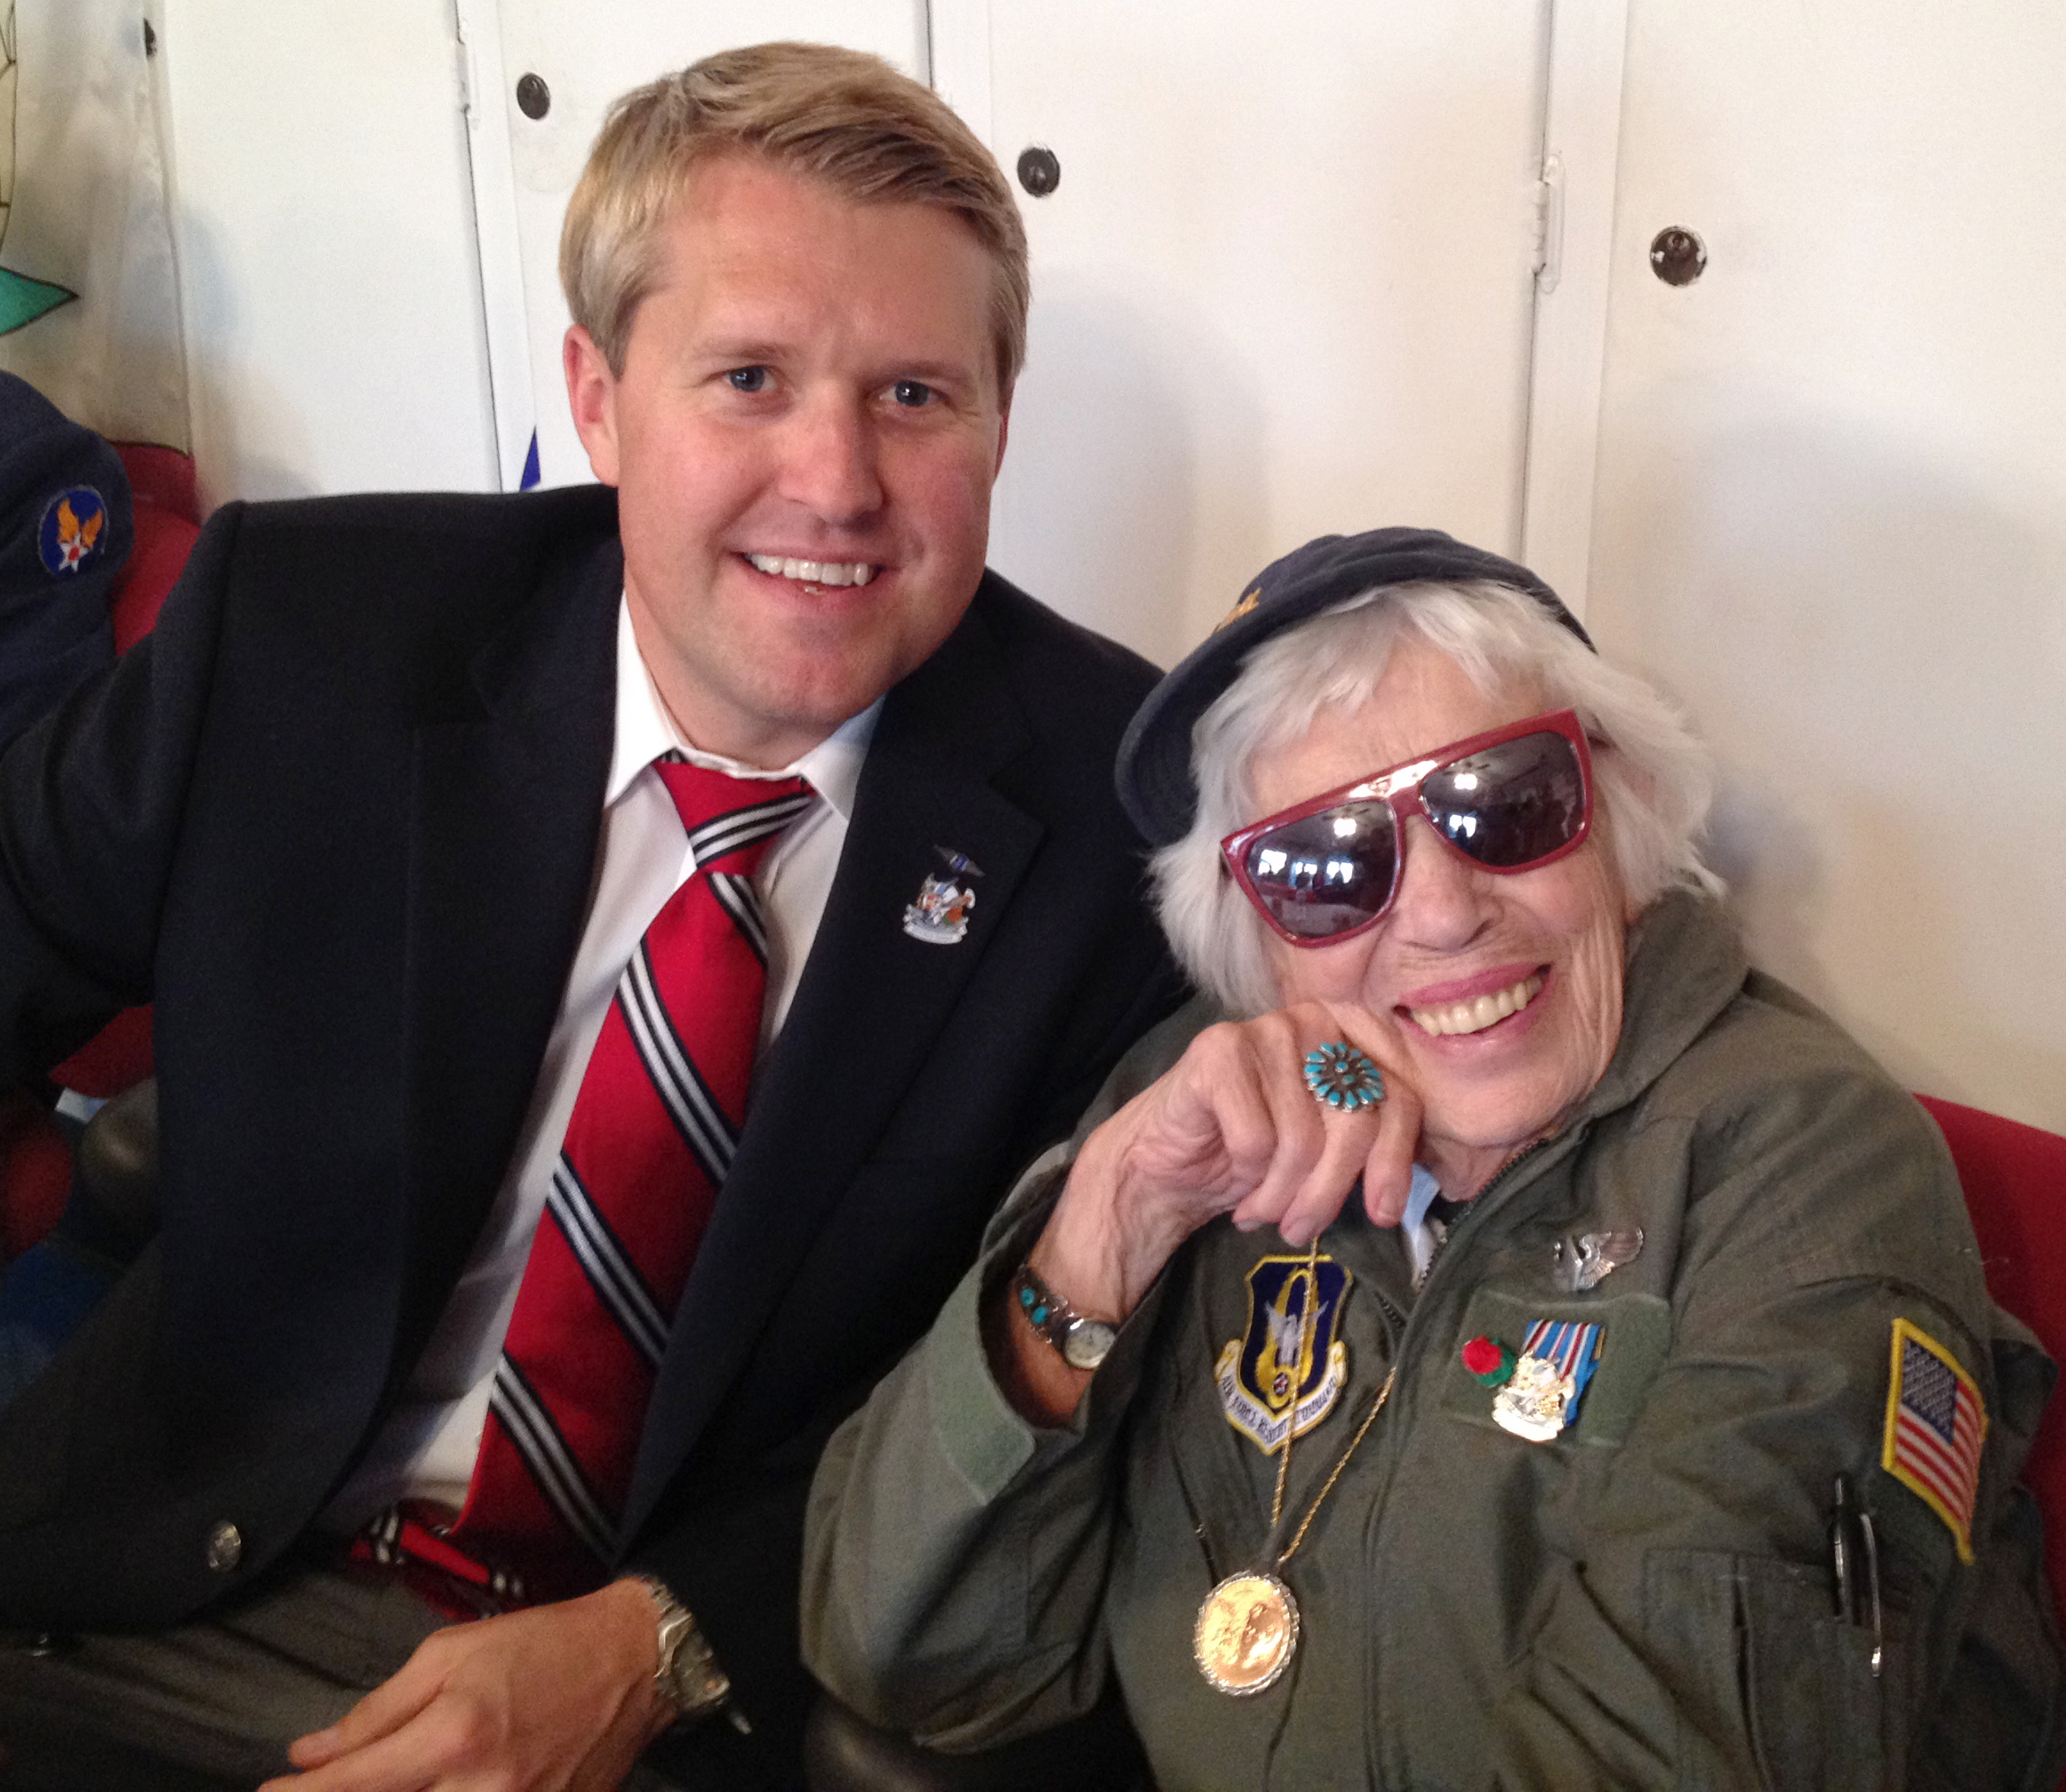 Sandberg with Jean McCreedy, a member of a World War II women's military pilot group that Sandberg's Condor Squadron honored in December 2013.